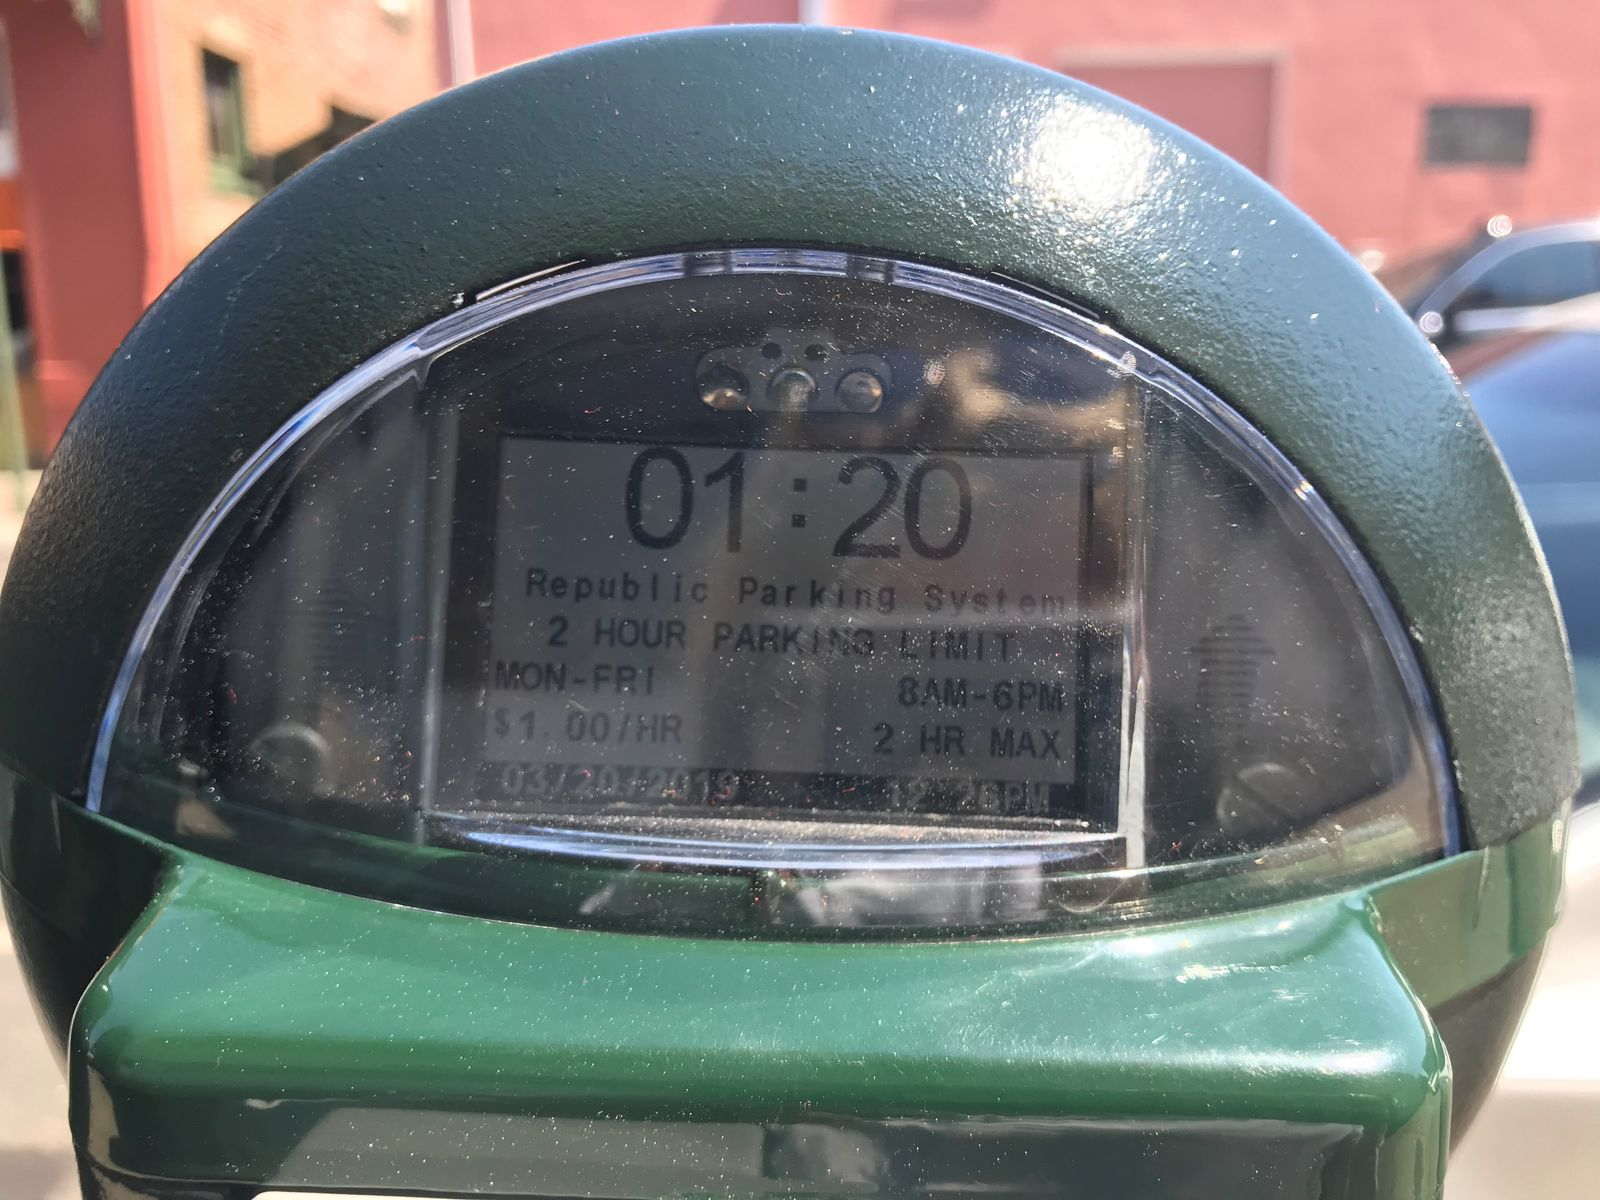 (image: WPMI) New downtown meters costing downtown employees and businesses